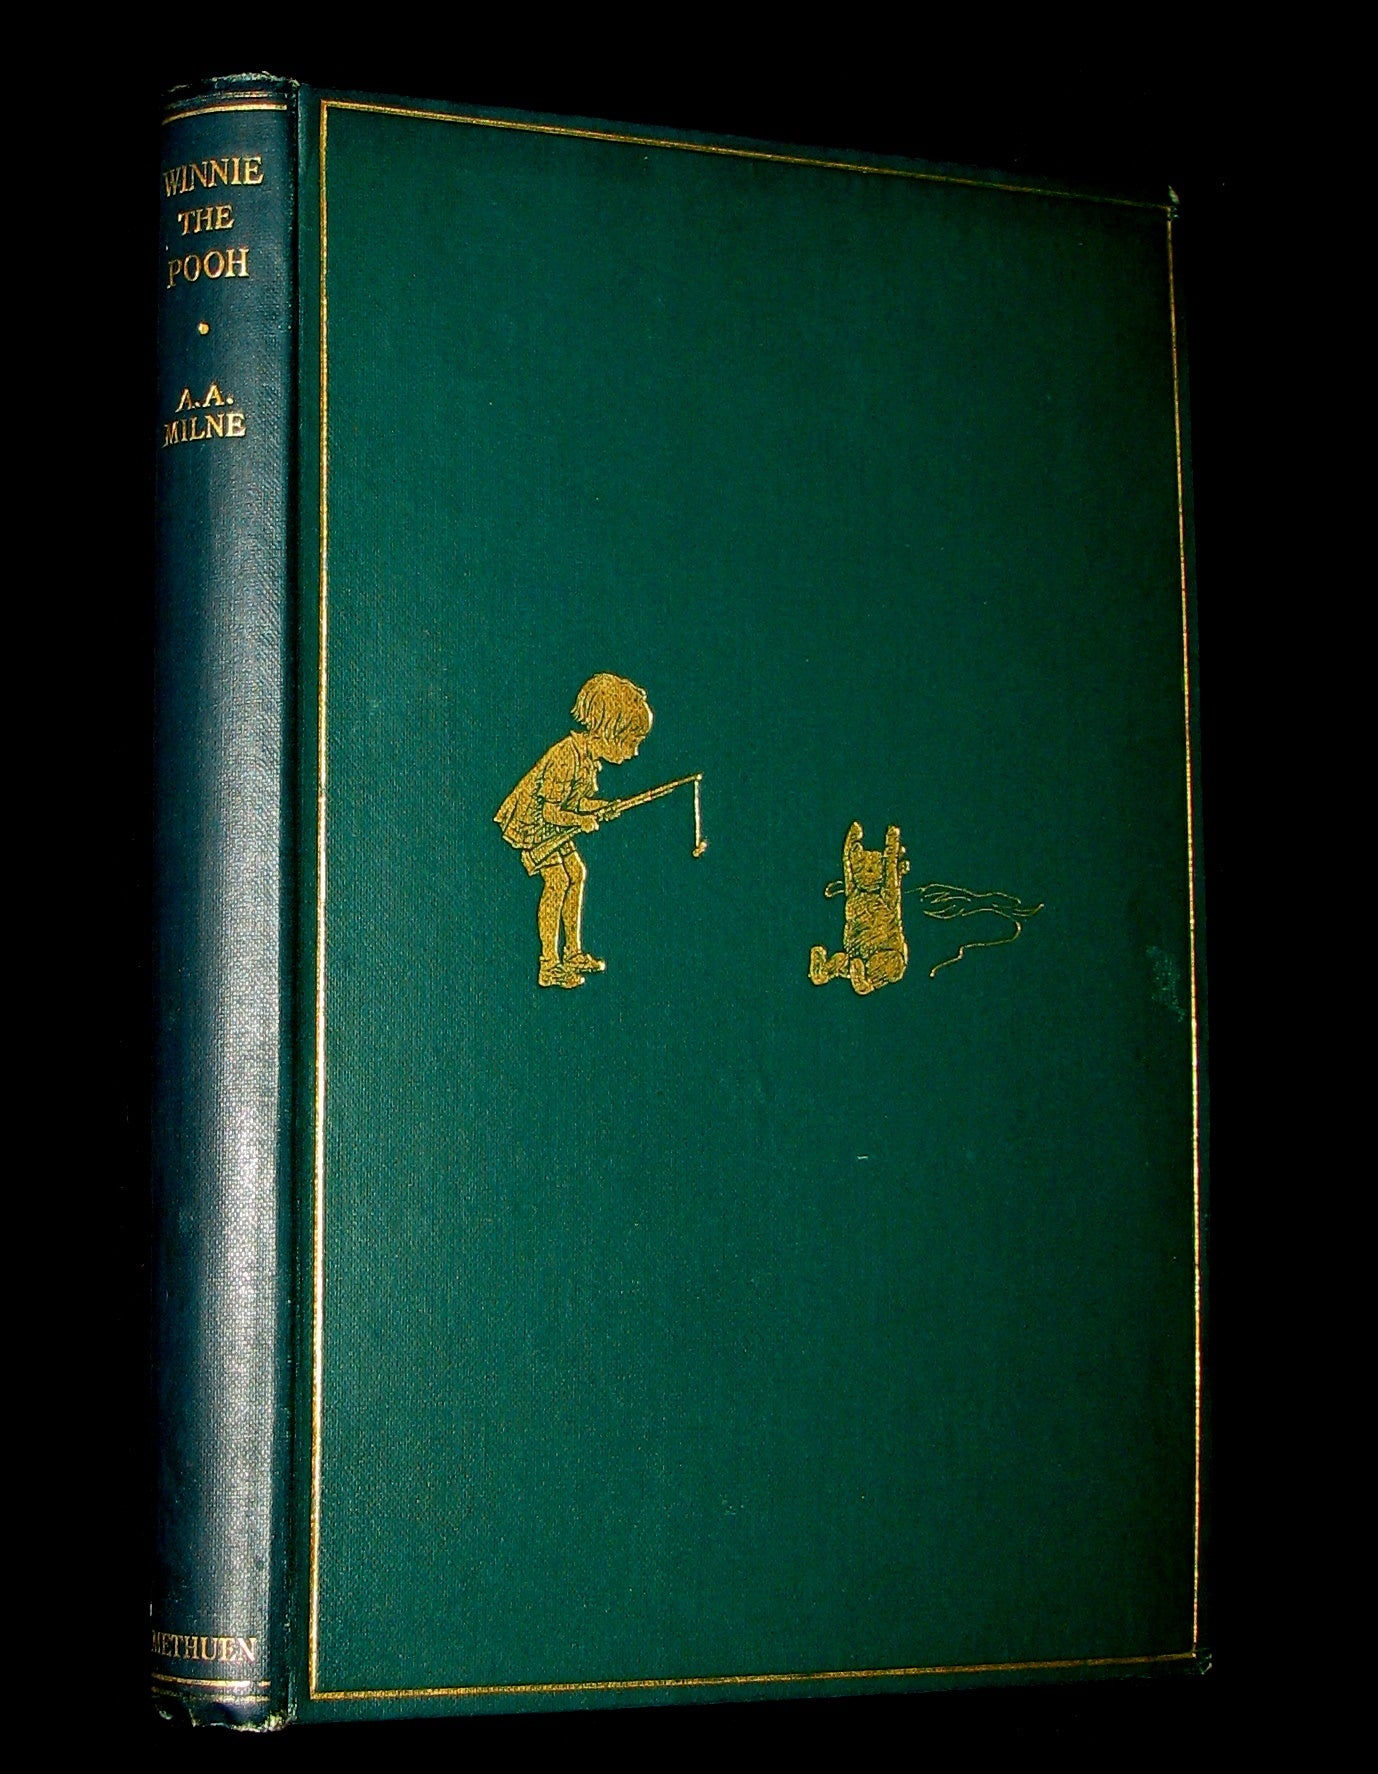 1926 First UK Edition - A. A. Milne & Ernest H. Shepard -  WINNIE-THE-POOH